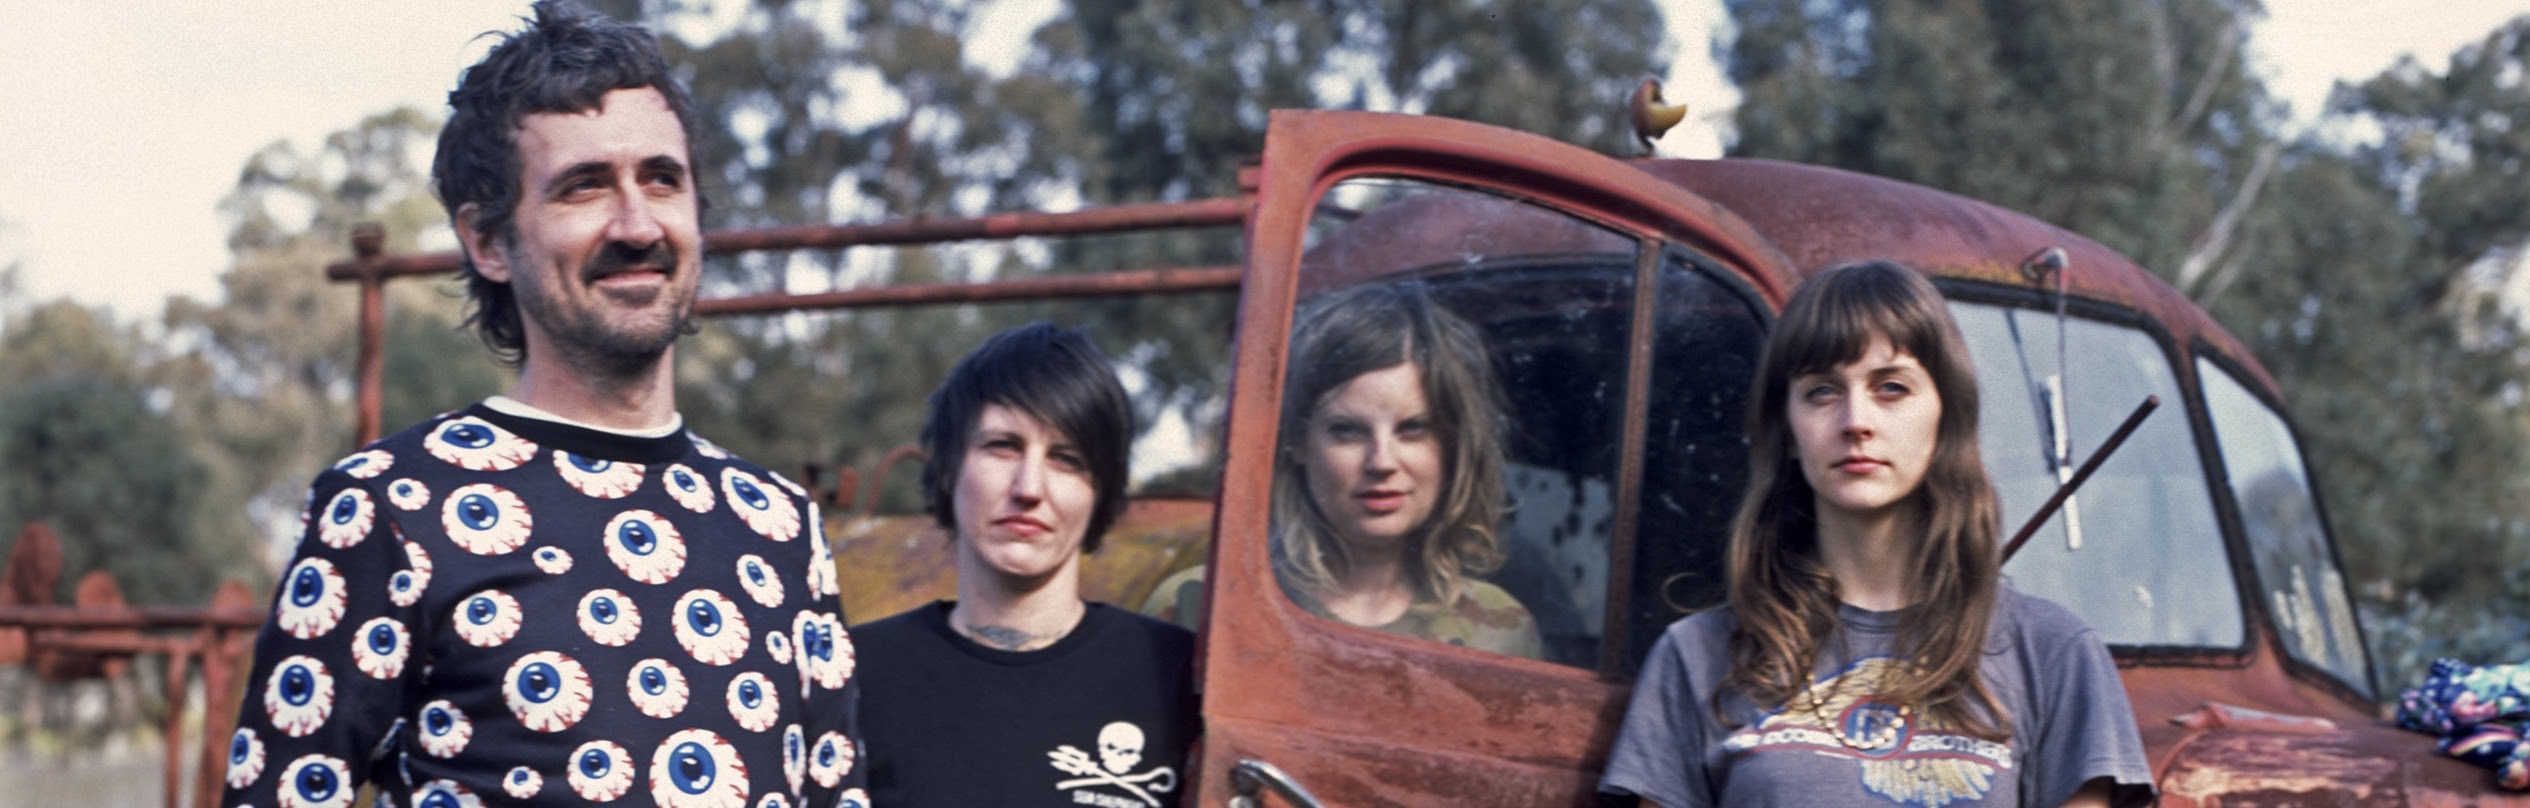 Tropical F*ckstorm (l-r: Gareth Liddiard, Lauren Hammel, Fiona Kitschin and Erica Dunn) photographed in Nagambie, Victoria, on 5 August 2017 by Bleddyn Butcher